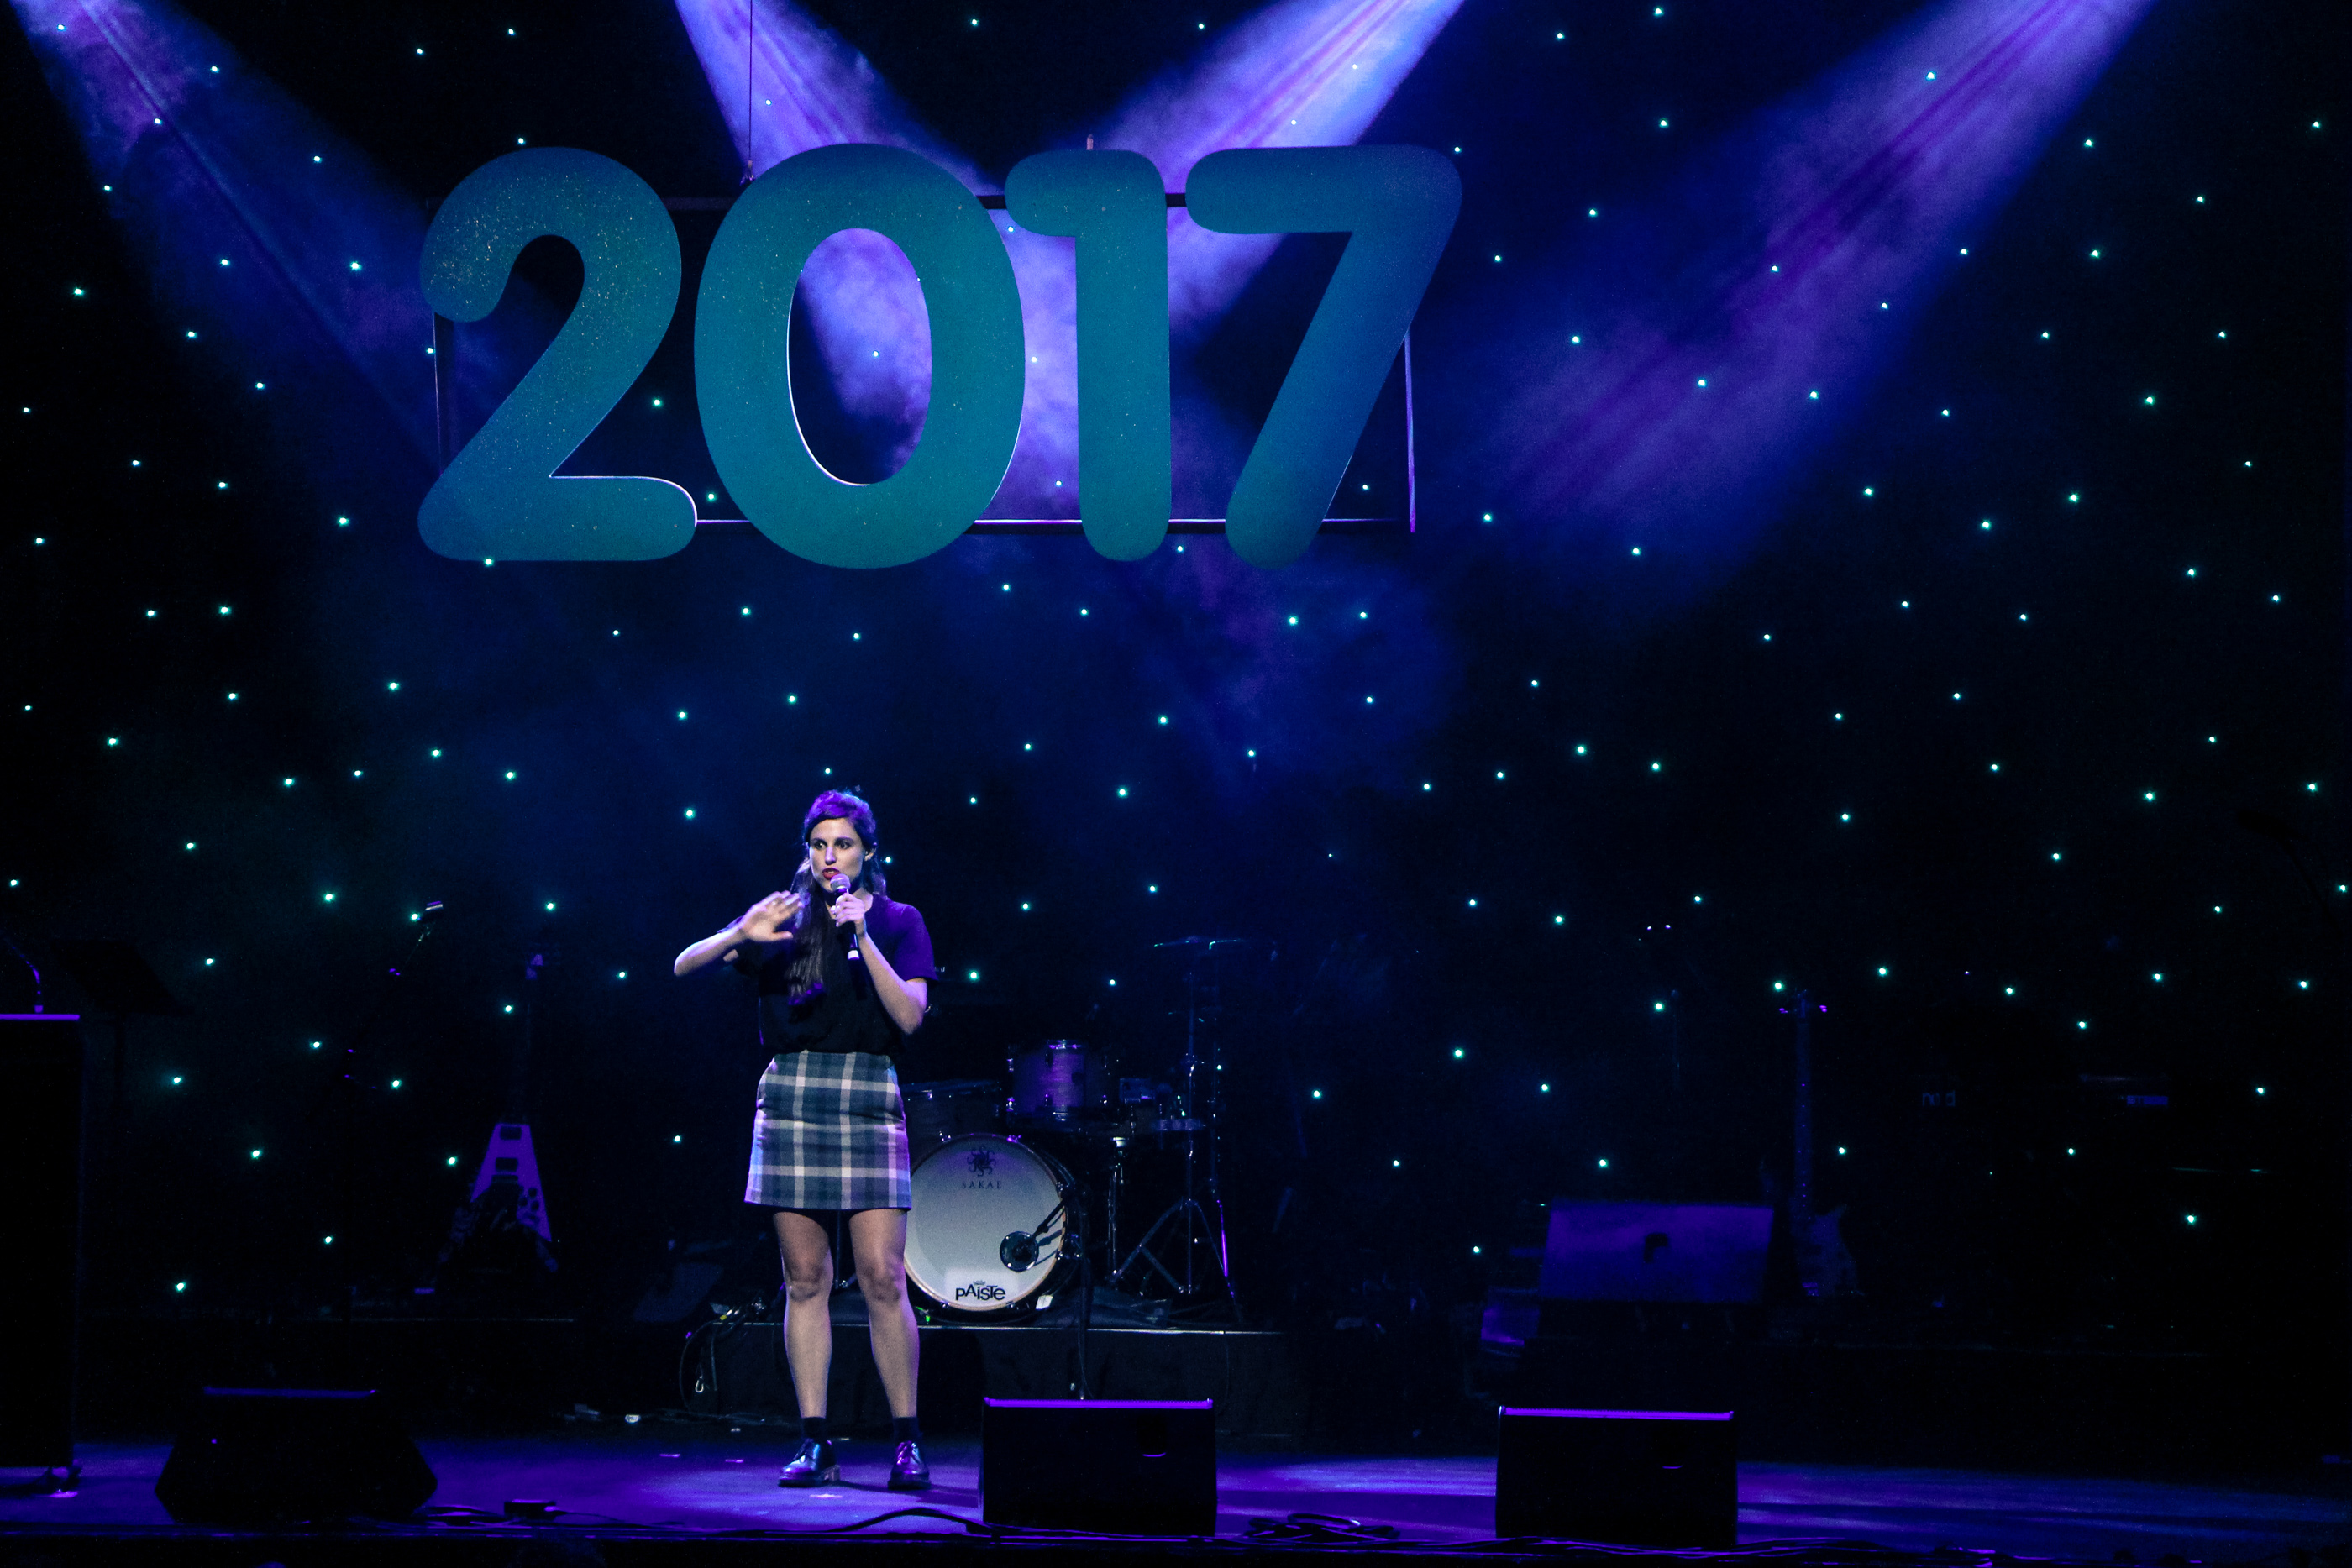 Isabel Angus performing at the Show of the Year 2017